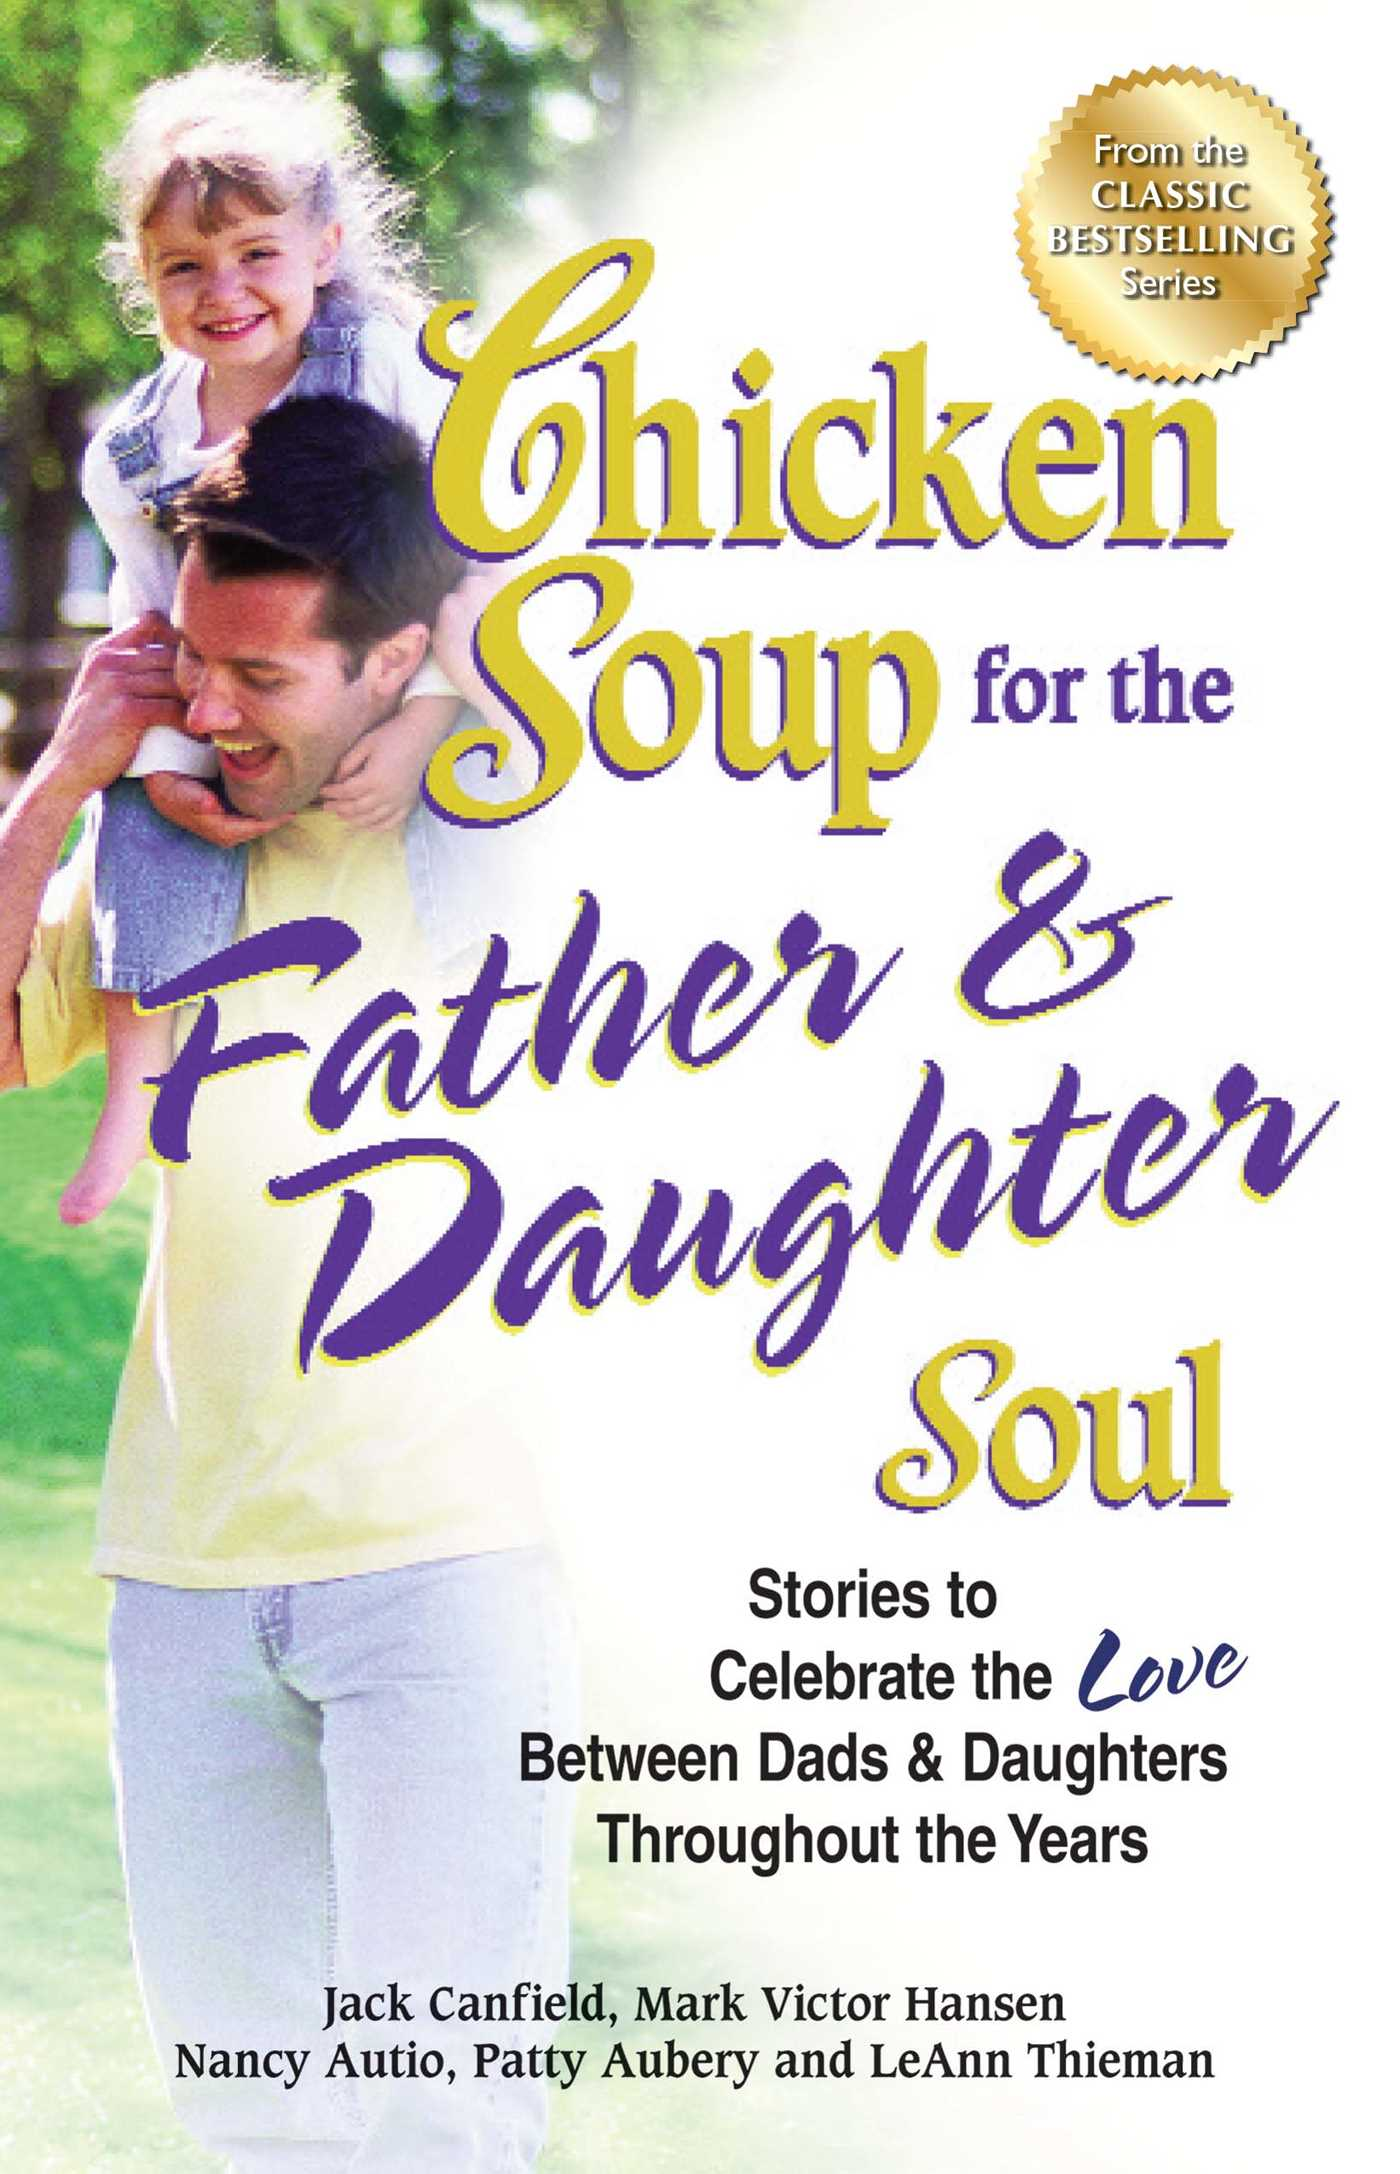 Chicken soup for the father daughter soul 9781623610265 hr